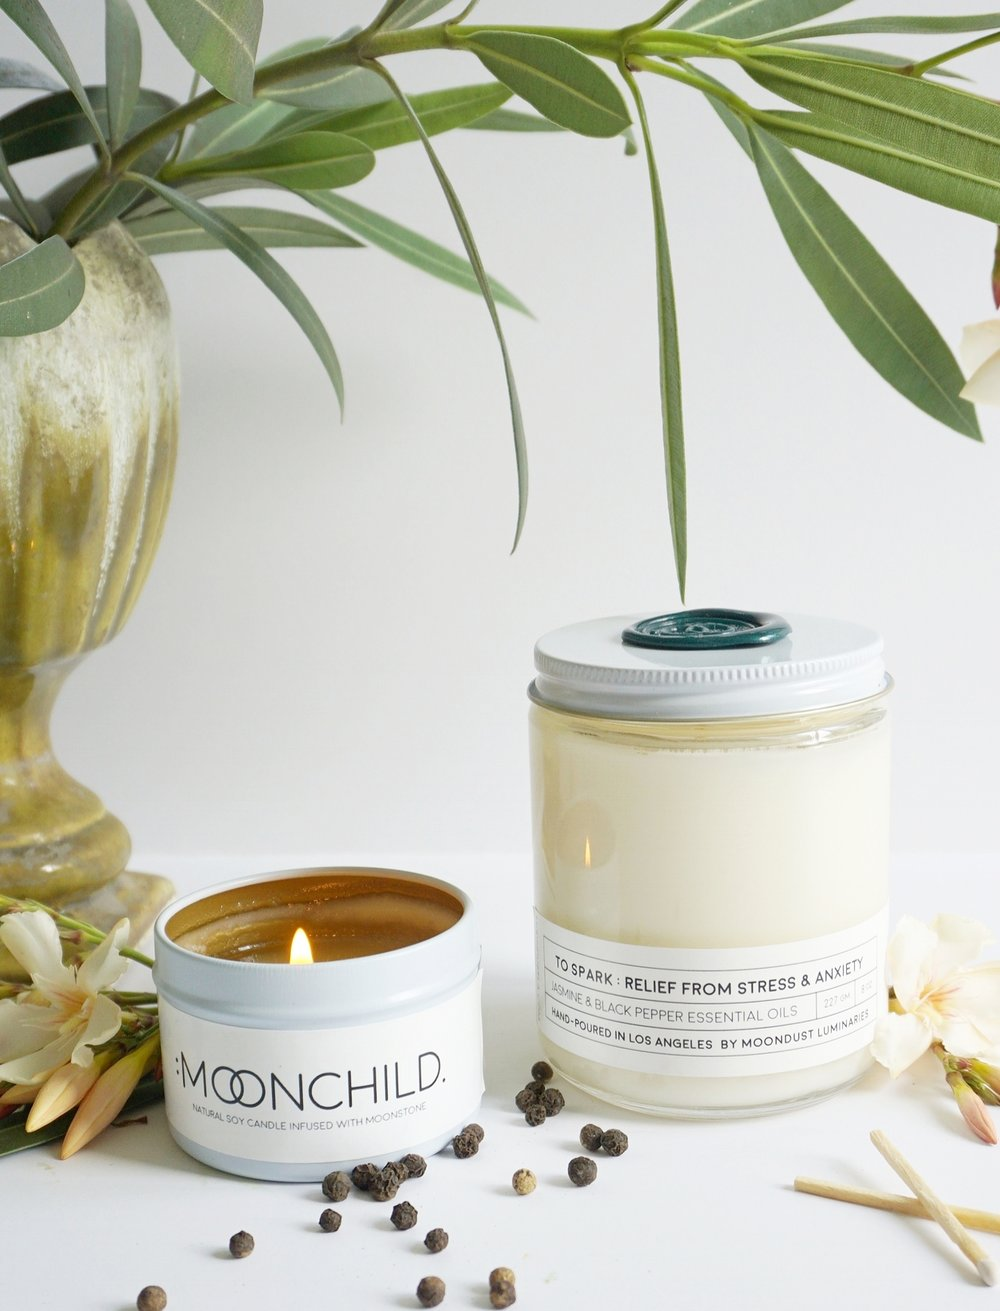 MOONCHILD - A multifaceted fragrance blend that feels at once mysterious & unknown, while also joyful & strangely familiar. Moonchild is the hippie inside us all who longs for a simpler lifestyle & more meaningful connections. Warming black pepper & intoxicating patchouli essential oils are deeply rooted in a woodsy base. The seductive jasmine & playful grapefruit essential oils seem to dance around the honeyed fig top notes.Top: Black Fig, Wild JasmineMiddle: Black Pepper, Fresh CitrusBase: Juniper, Patchouli, Wet Earth